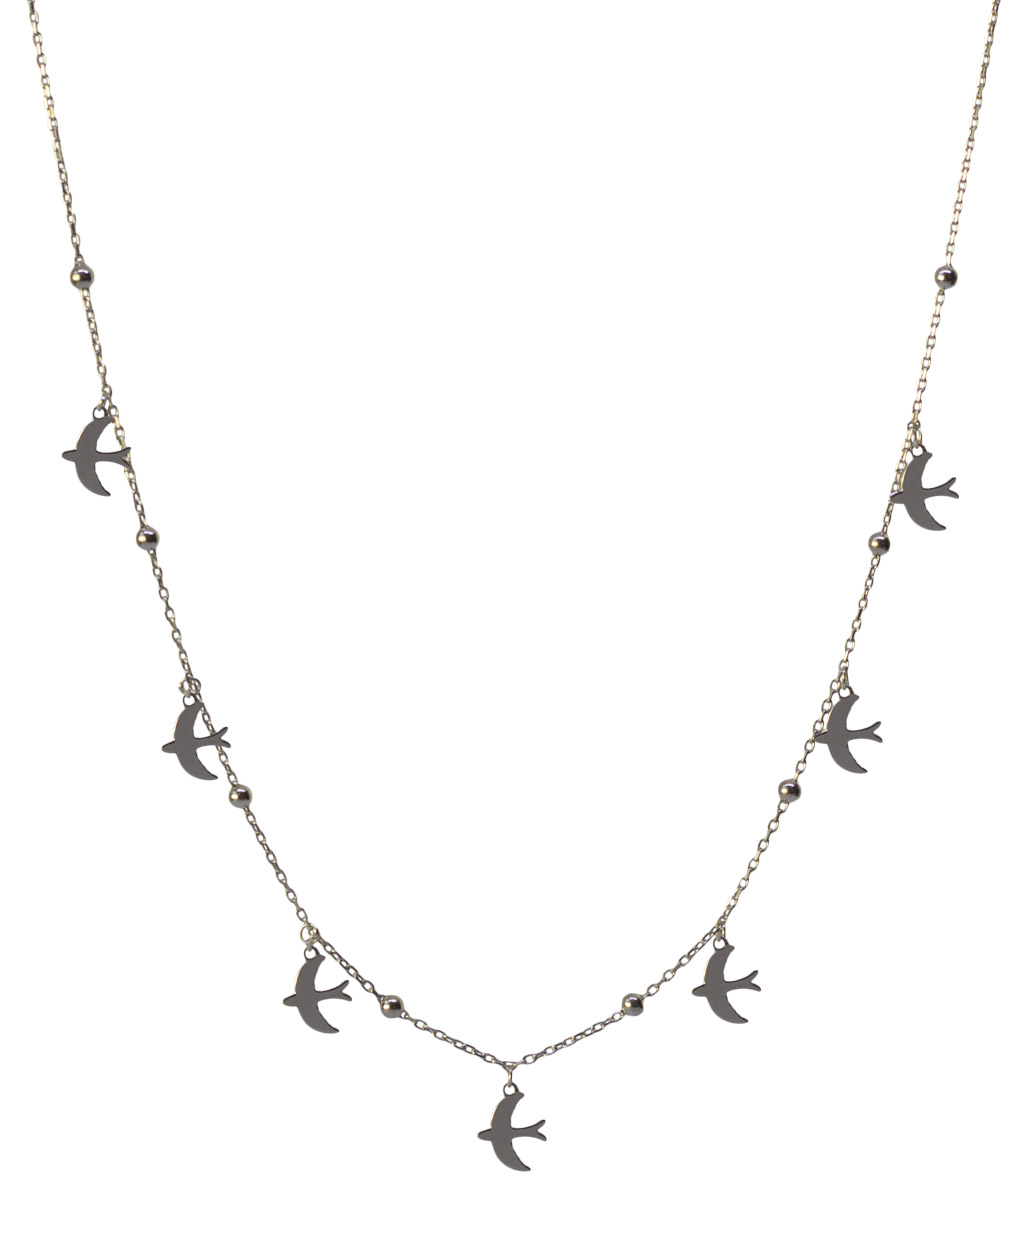 Martin Silver Necklace